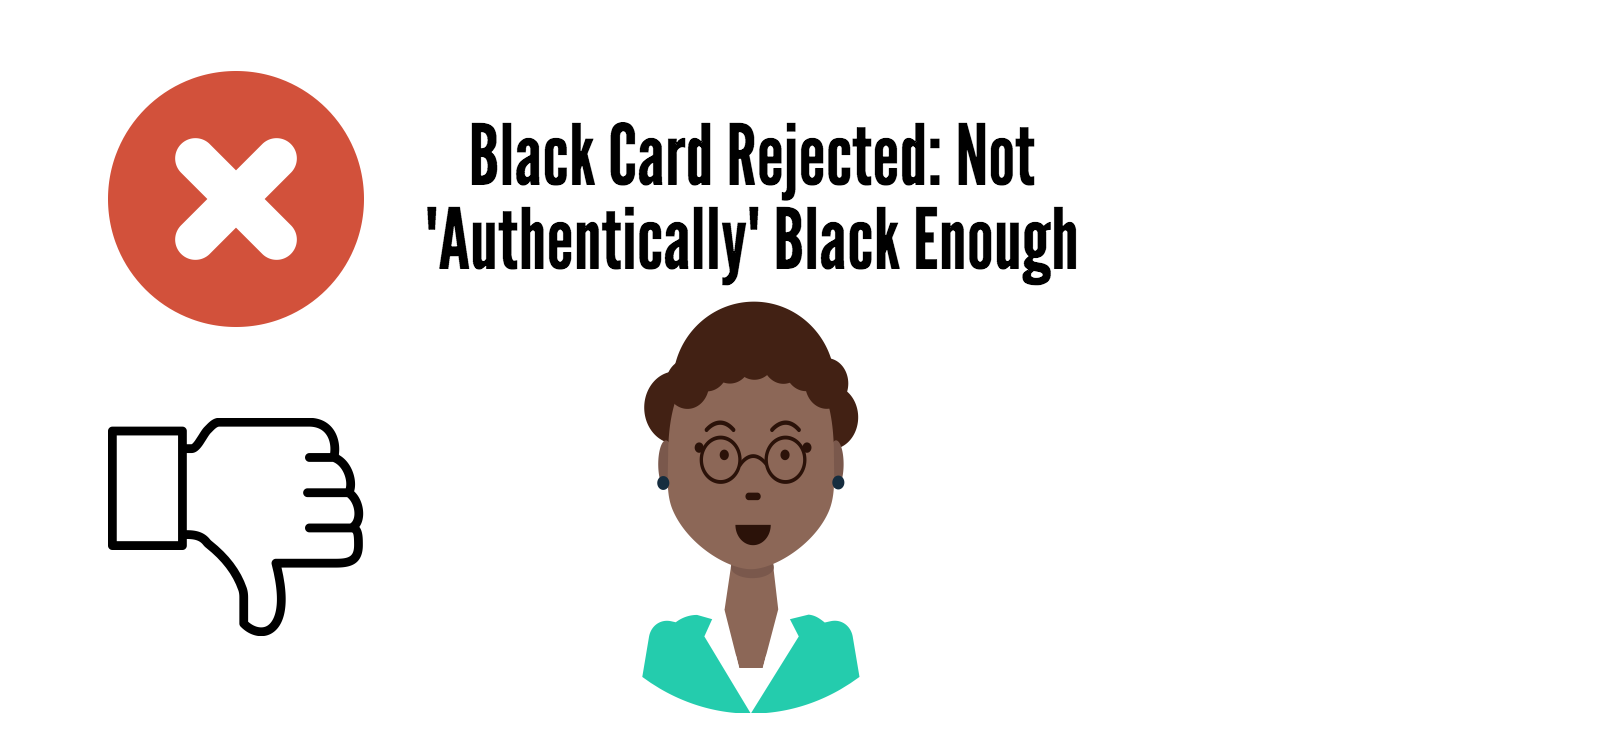 Not Authentically Black: Black Card Rejected